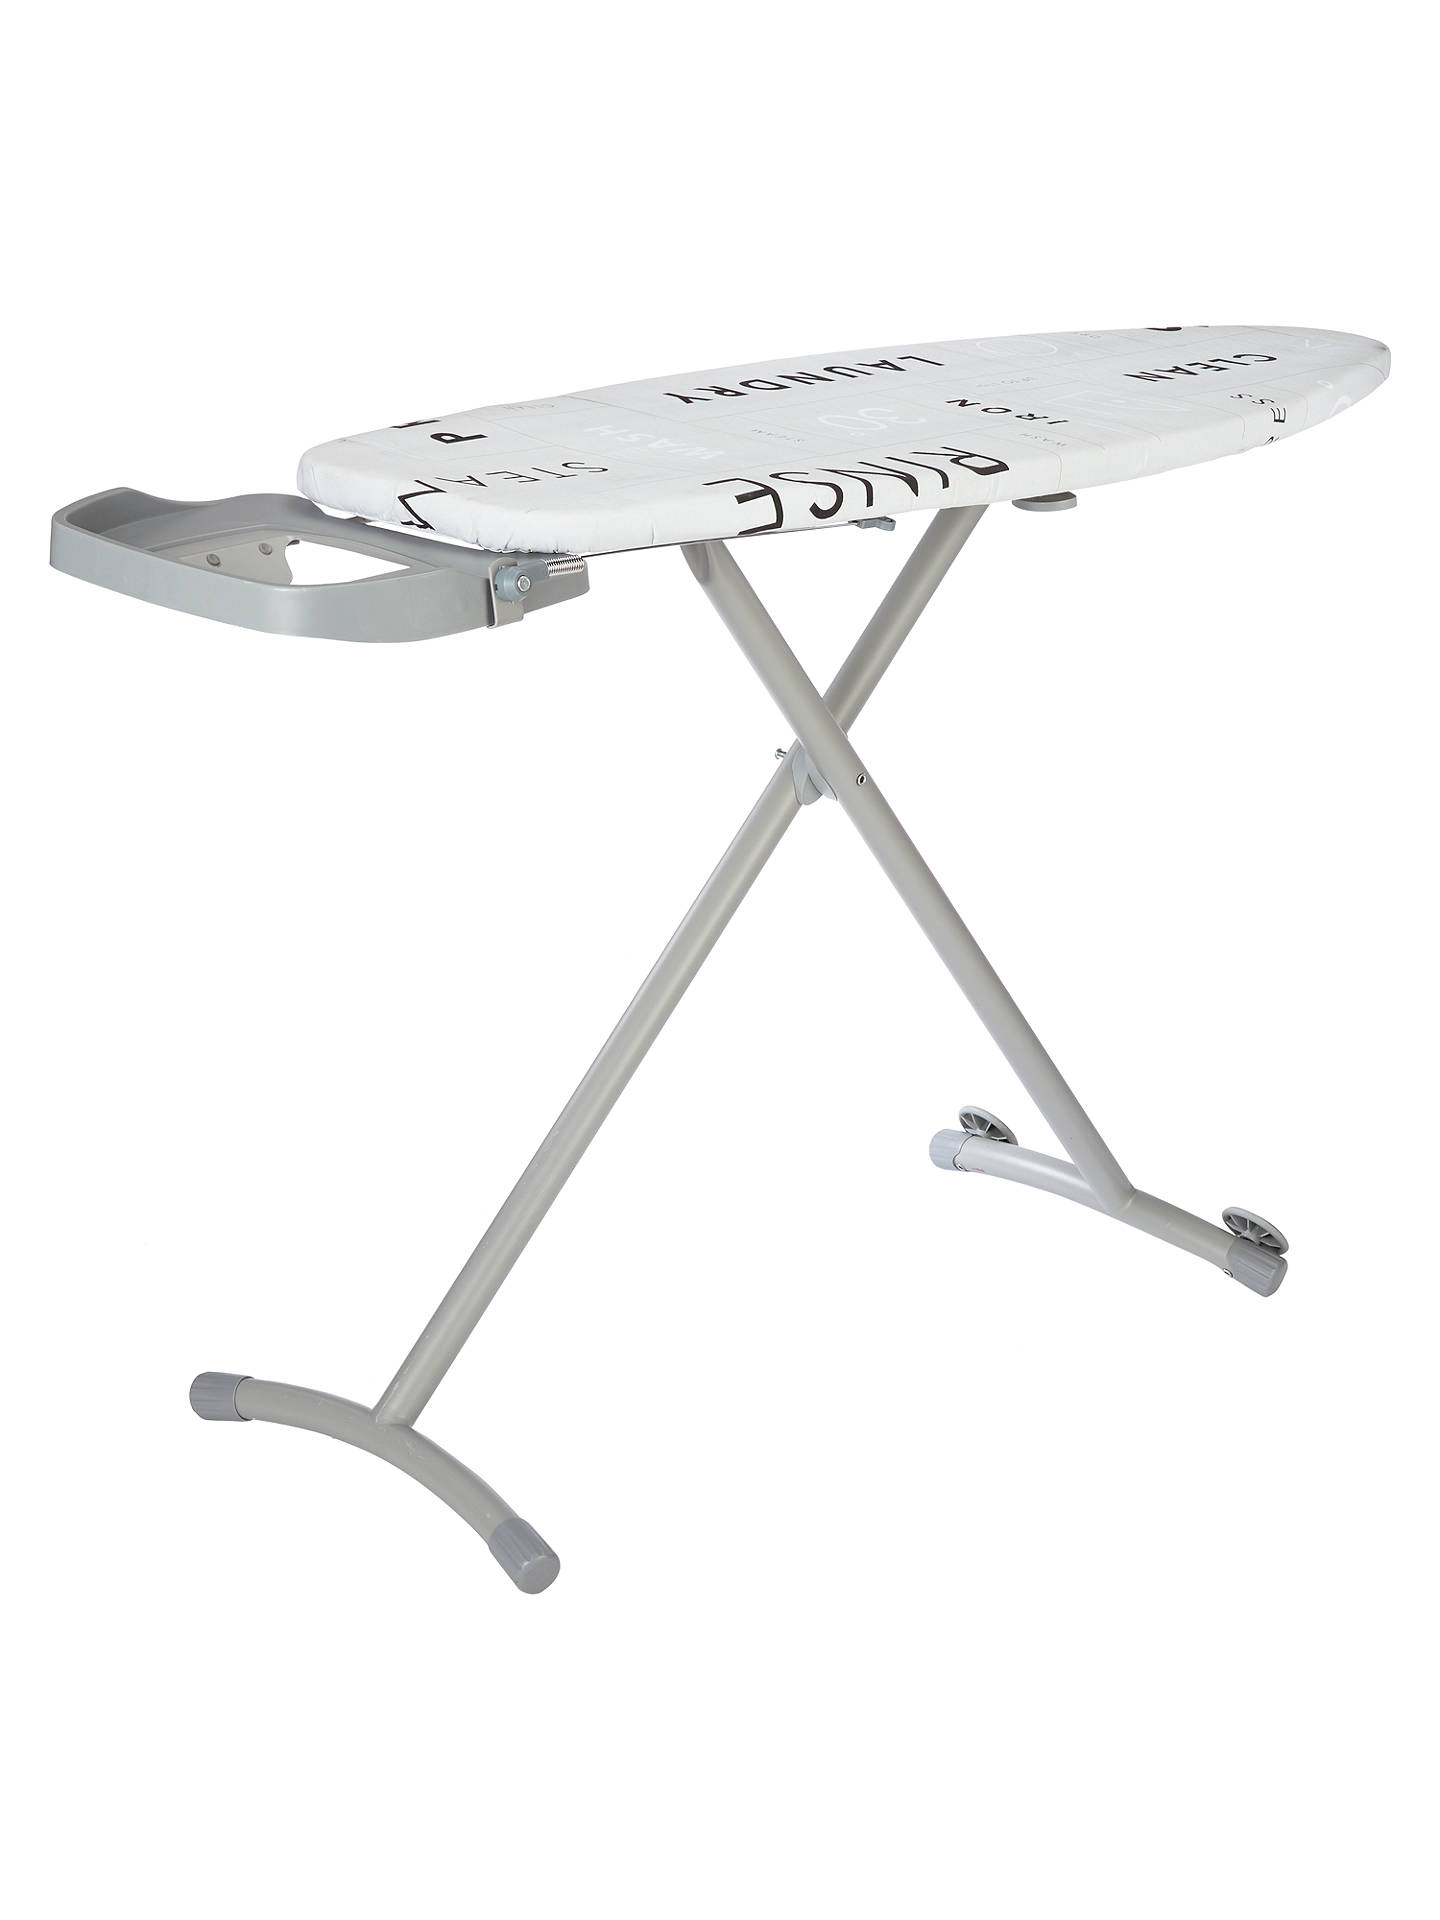 0fc0c13c268f Buy John Lewis & Partners Curve Ironing Board, L135 x W45cm Online at  johnlewis.